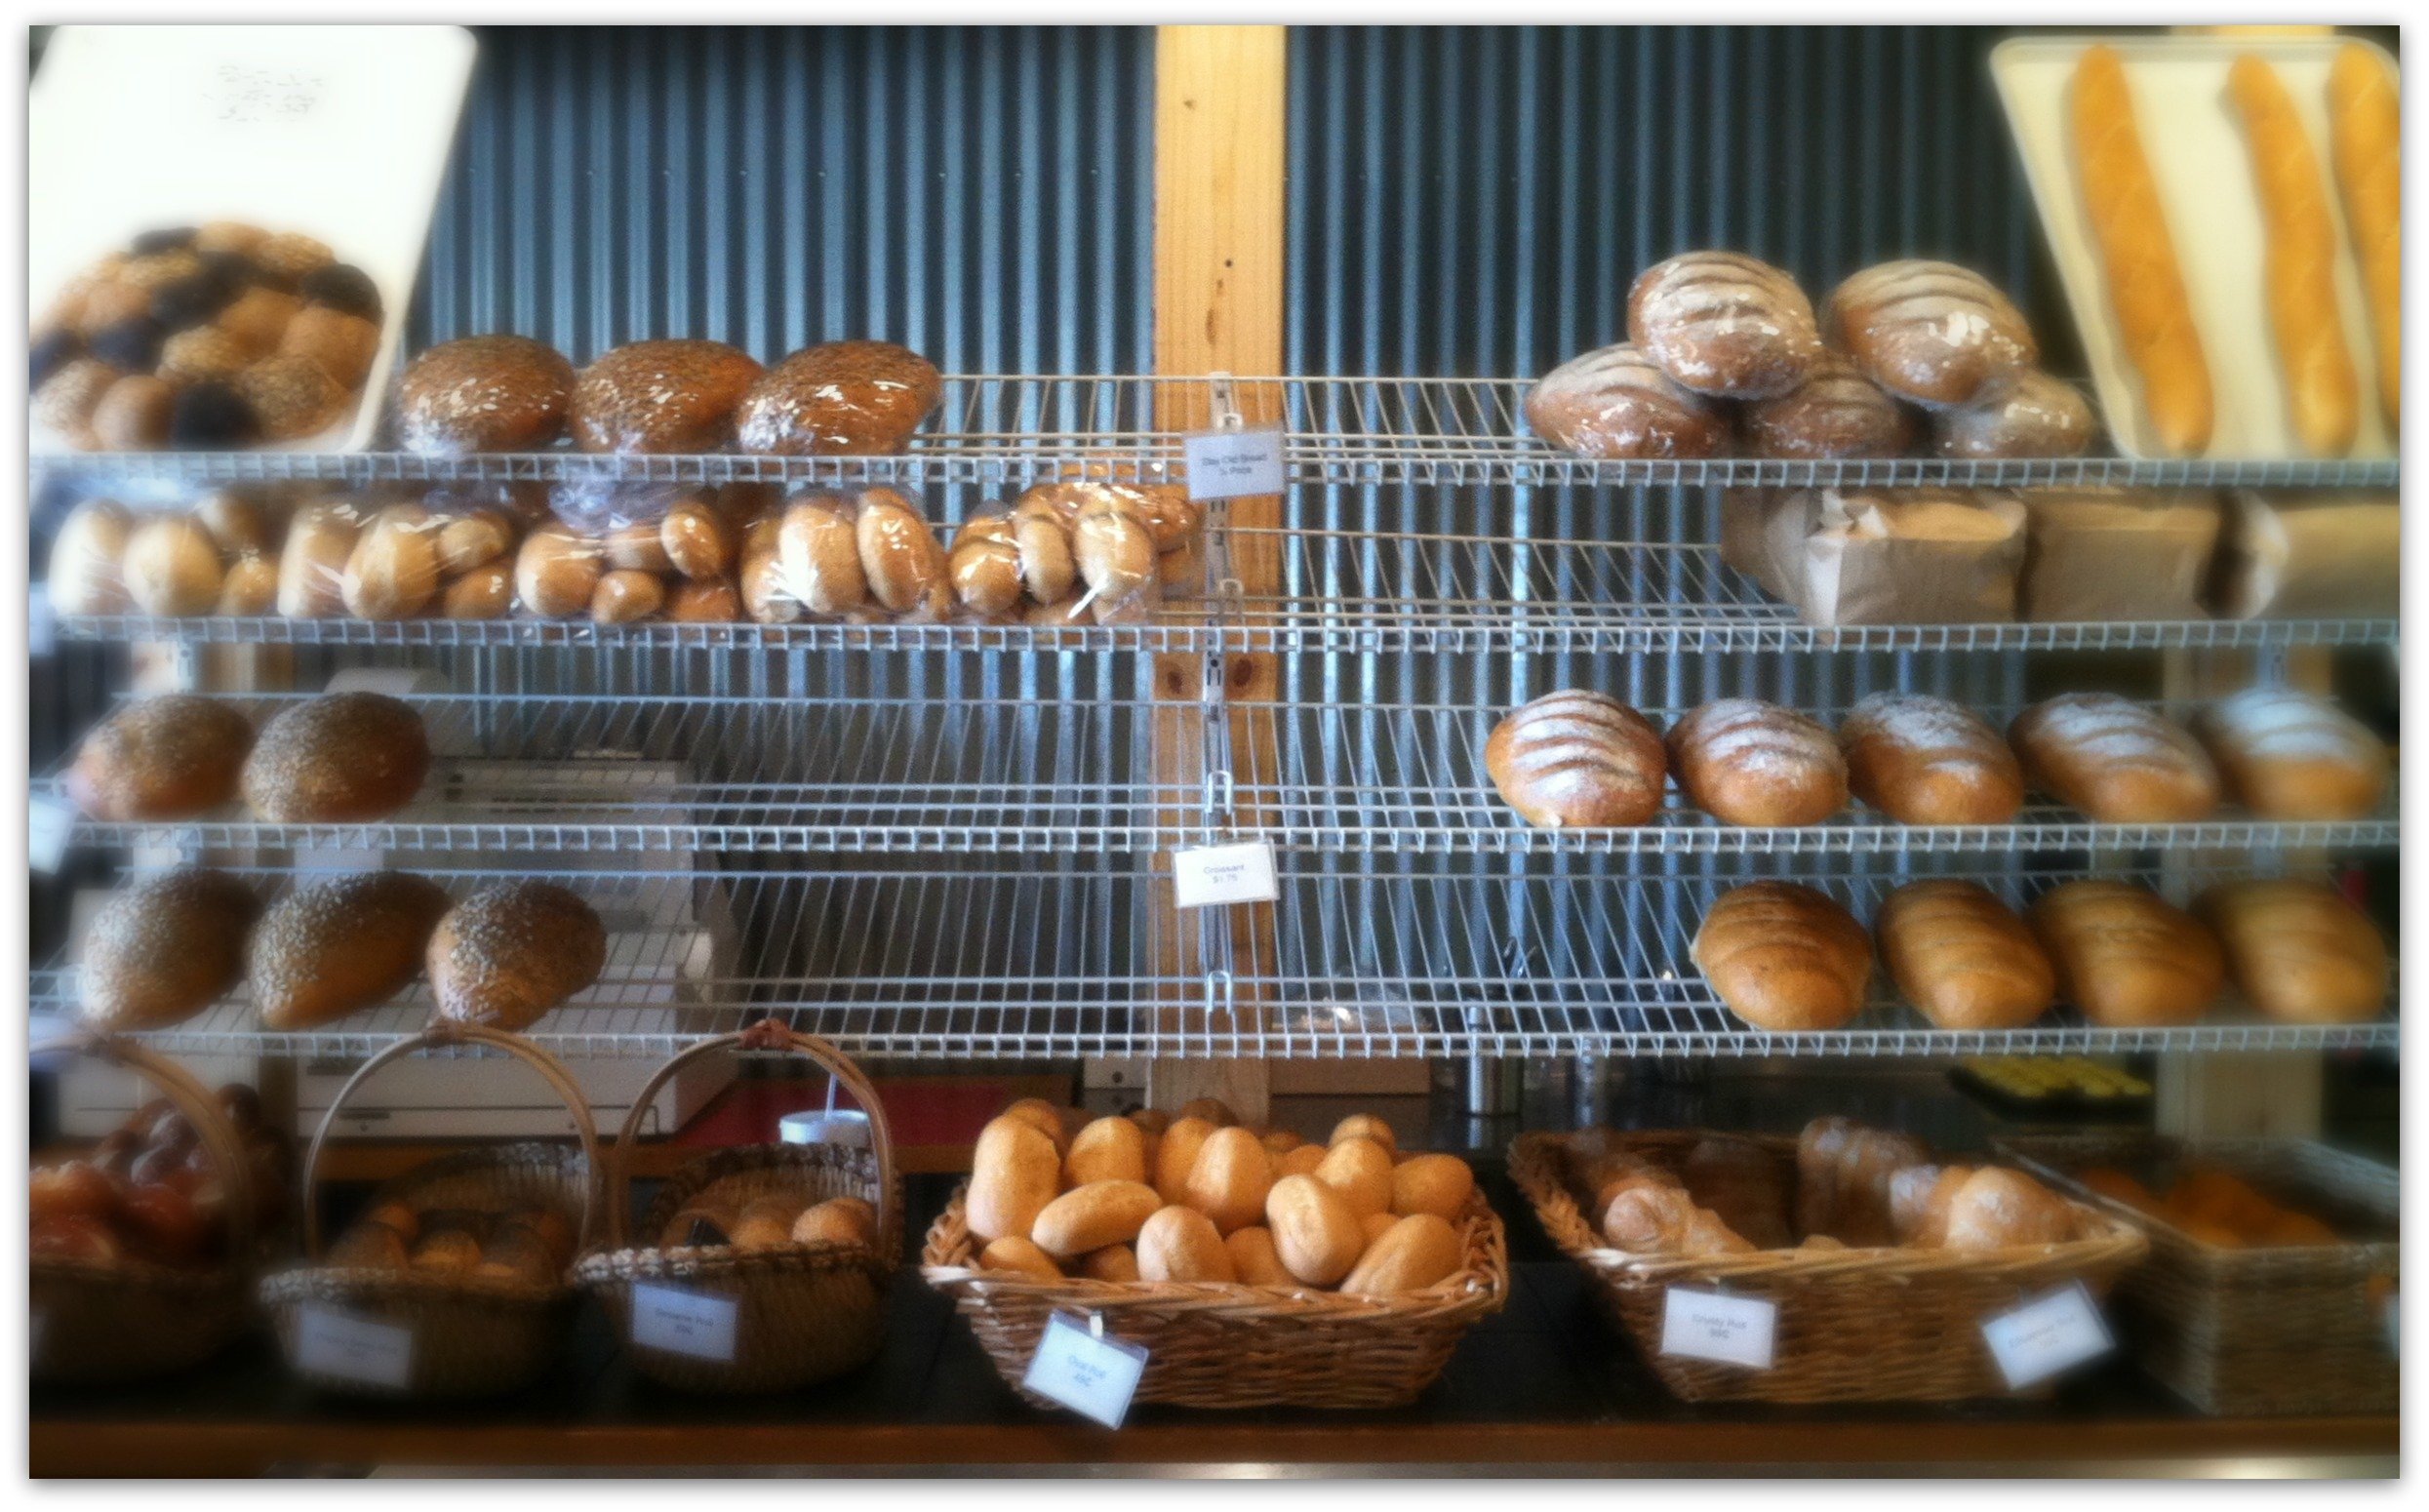 the 4 foot fork and a life's lesson-bakery